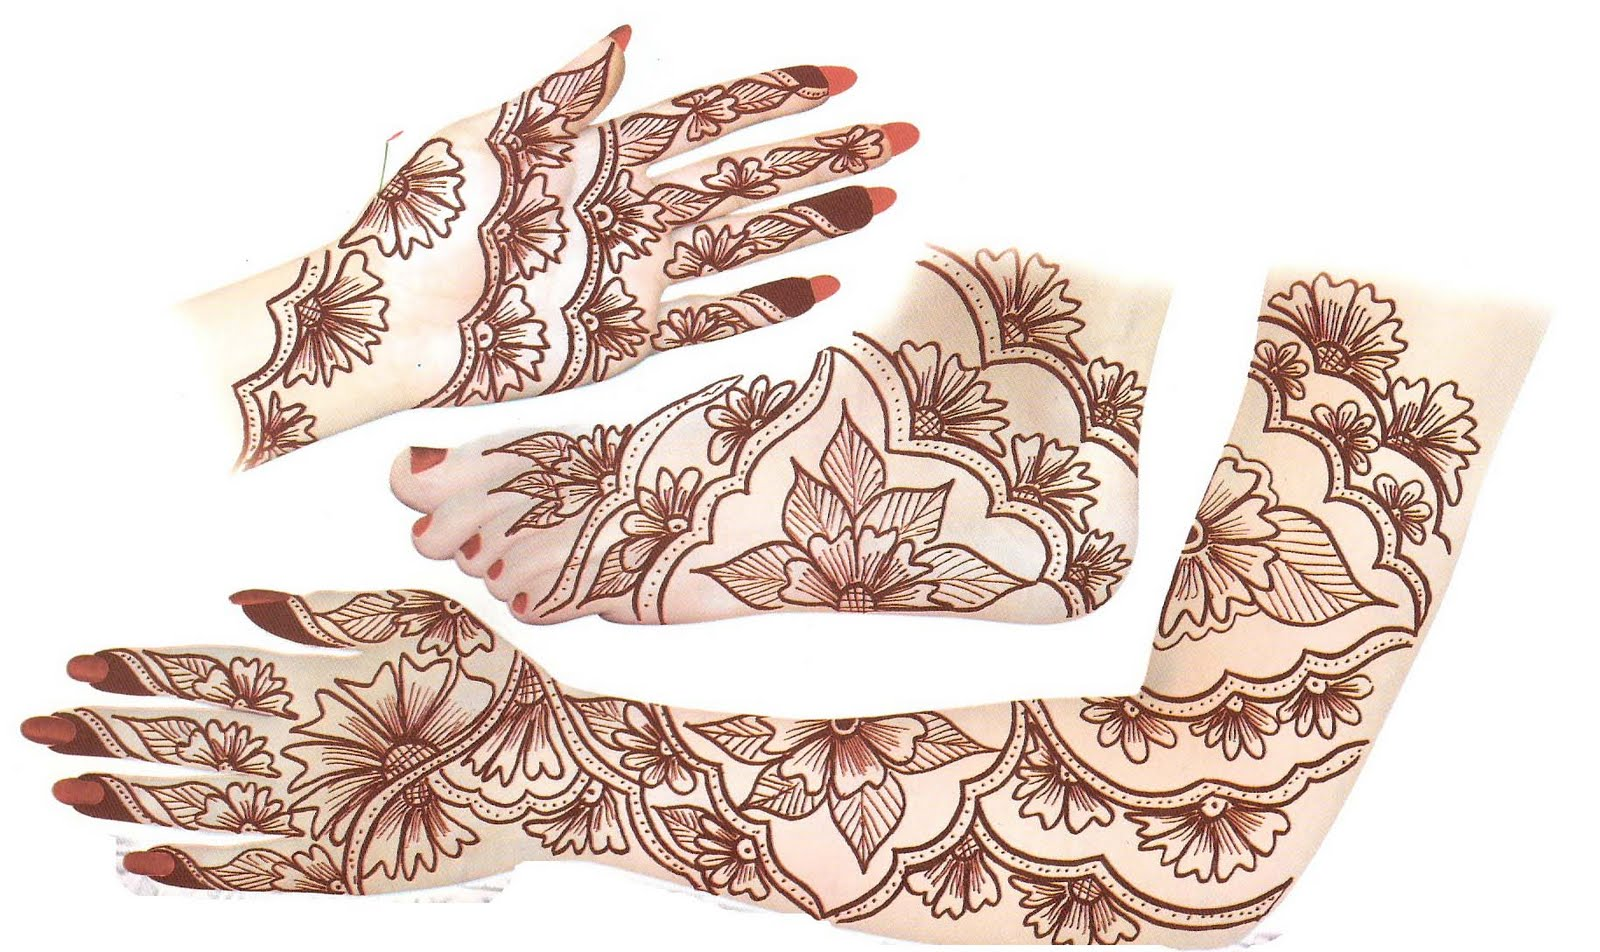 Leg Mehndi Wallpaper : Wallpaper mehandi design free download